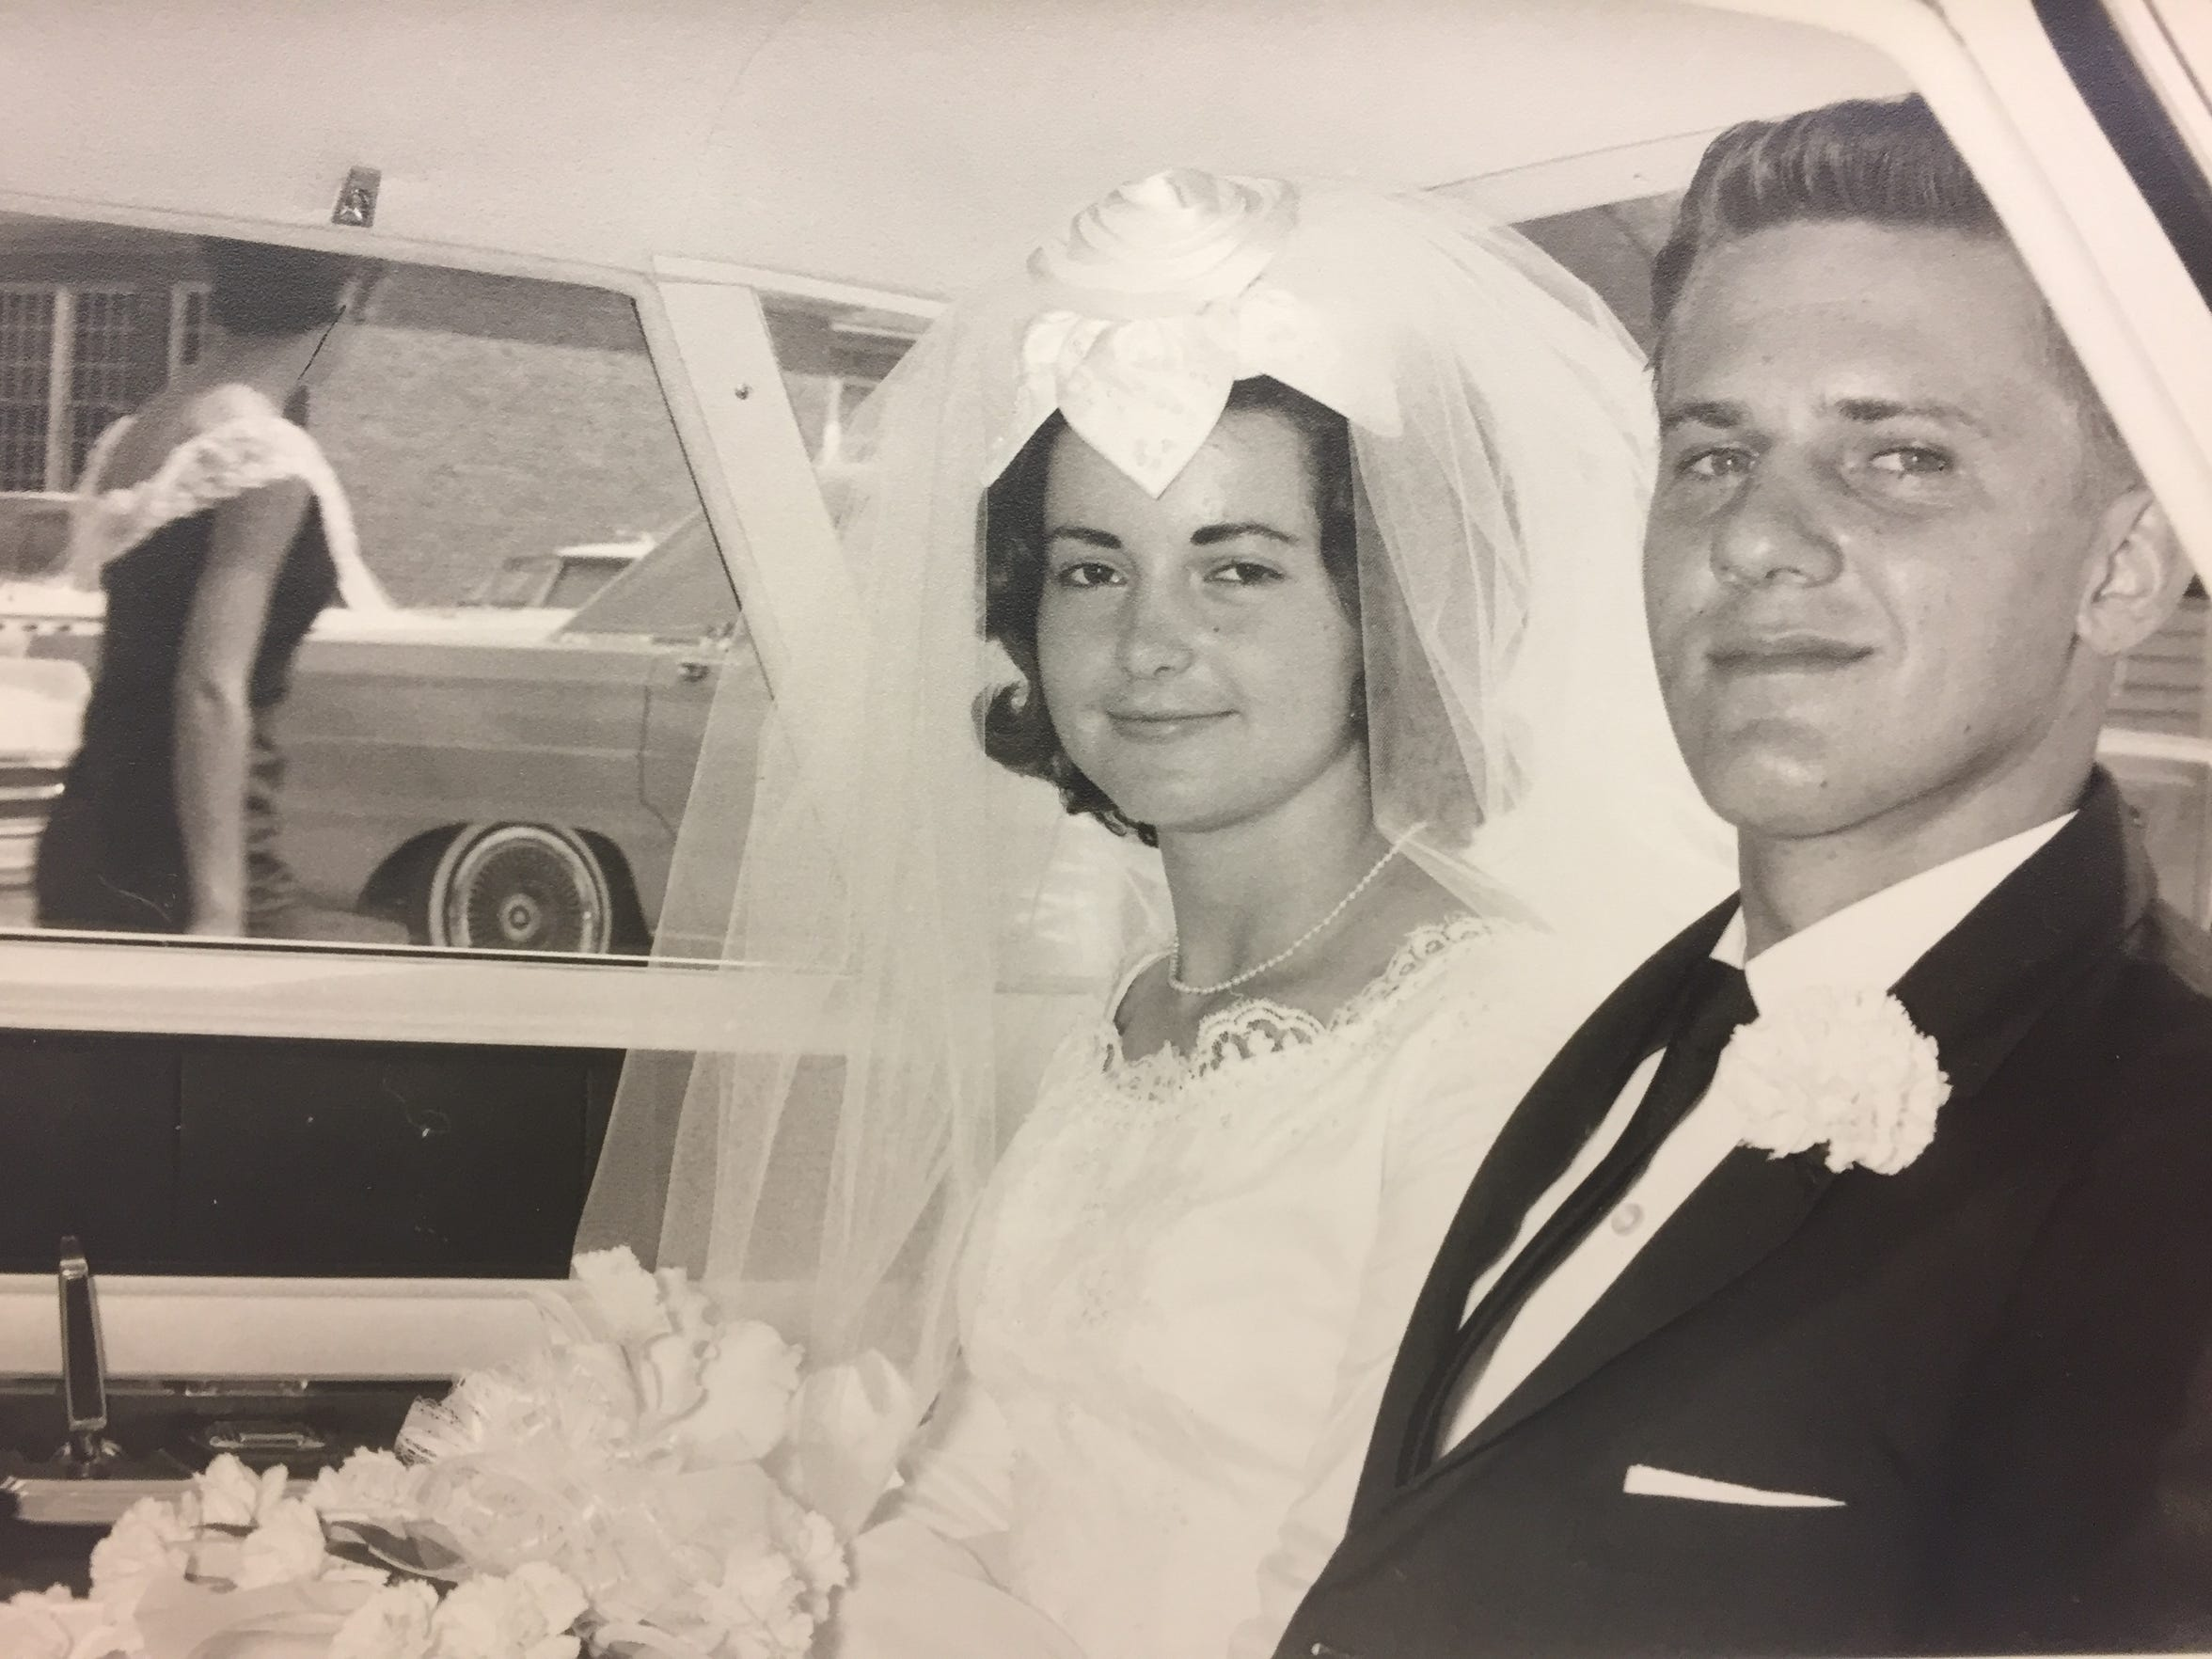 Russell and the former Jacqueline Marie Hanks were married Aug. 28, 1965 at Immaculate Conception Catholic Church in Morse, a small farming town in Acadia Parish.